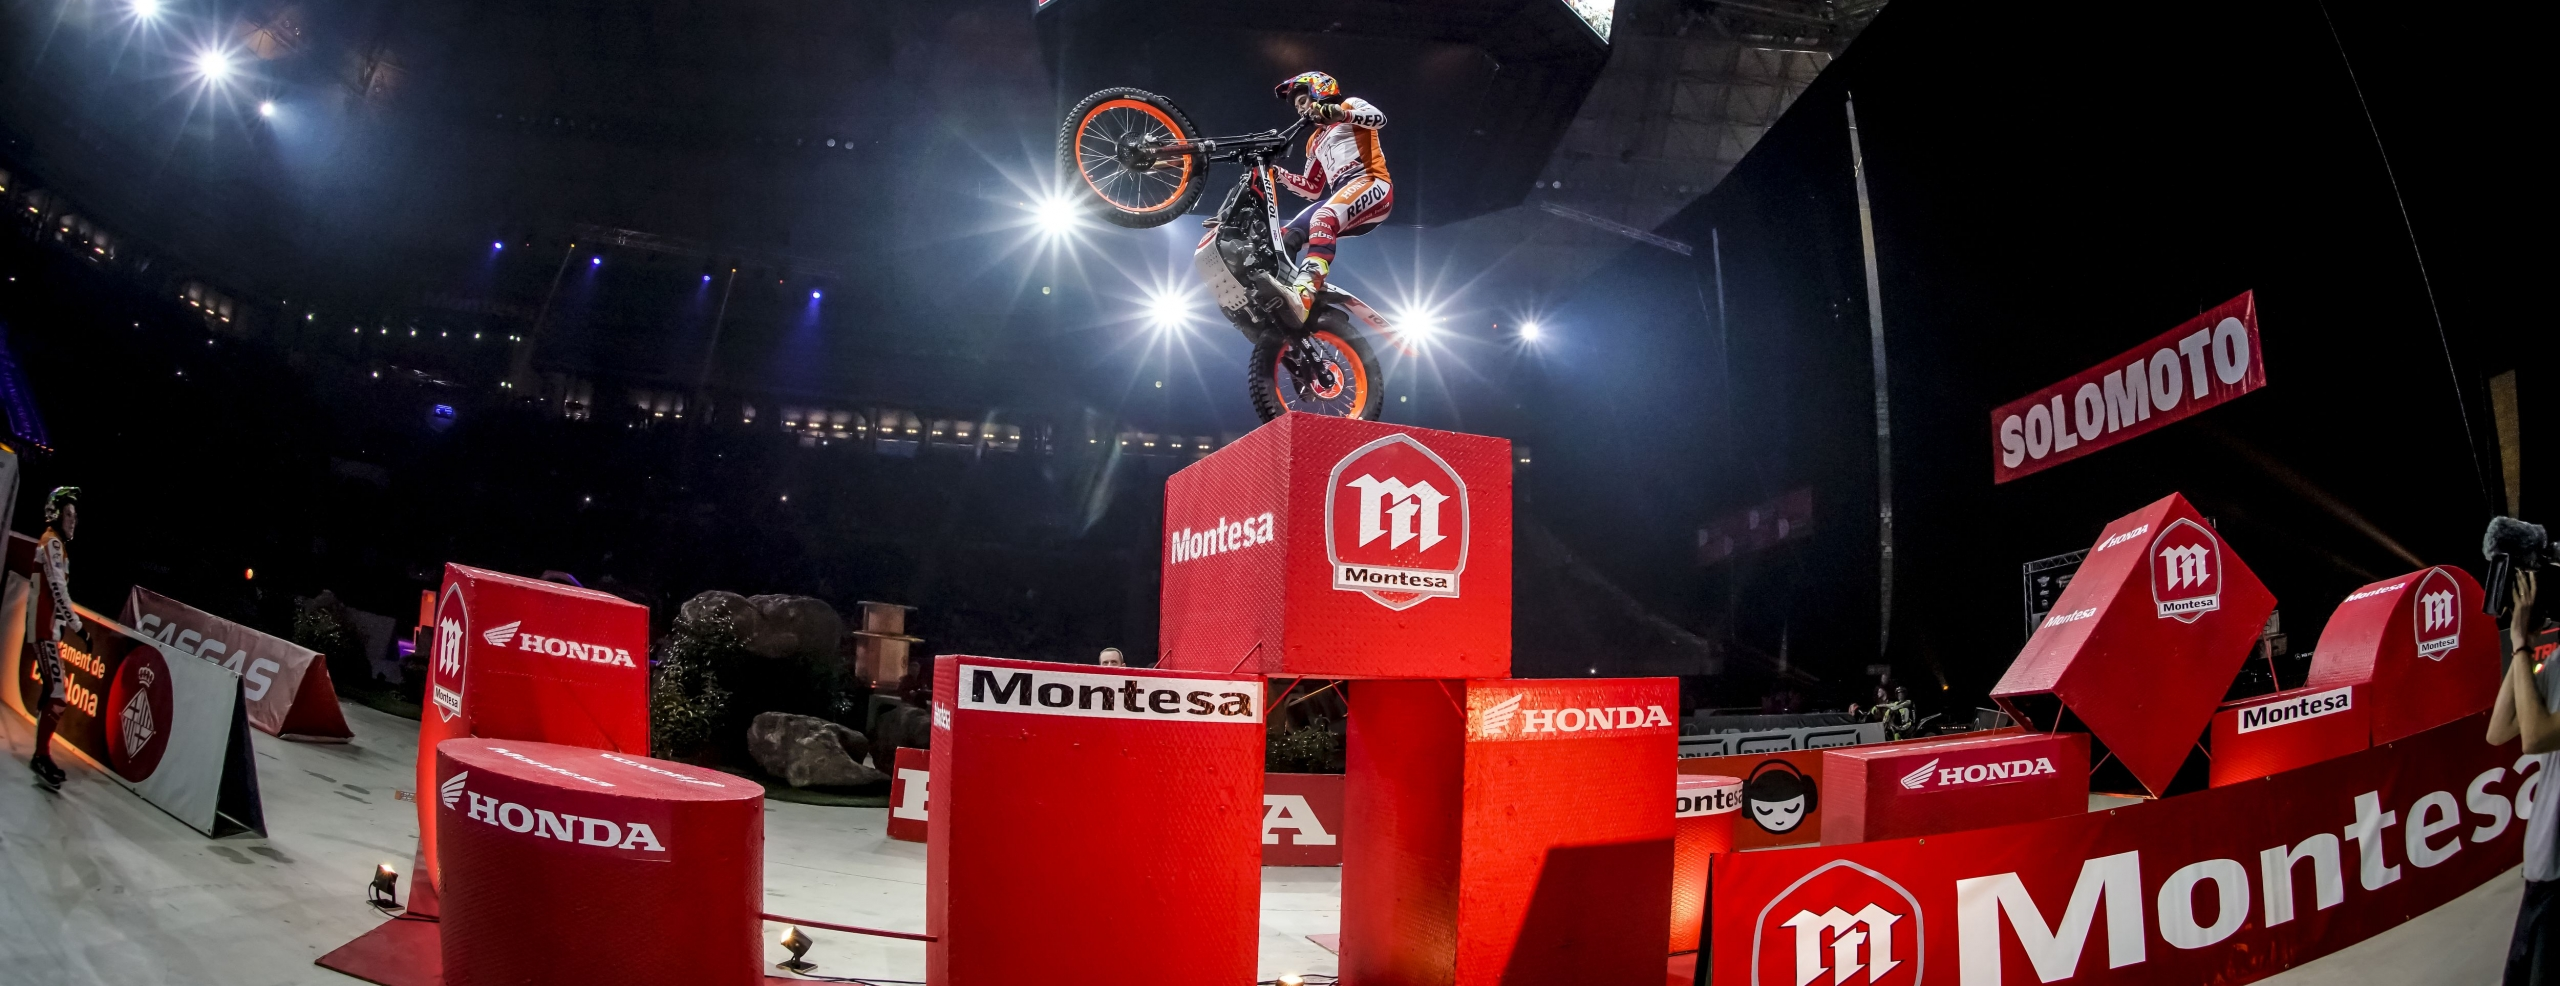 Toni Bou gets the fifth consecutive victory in Barcelona